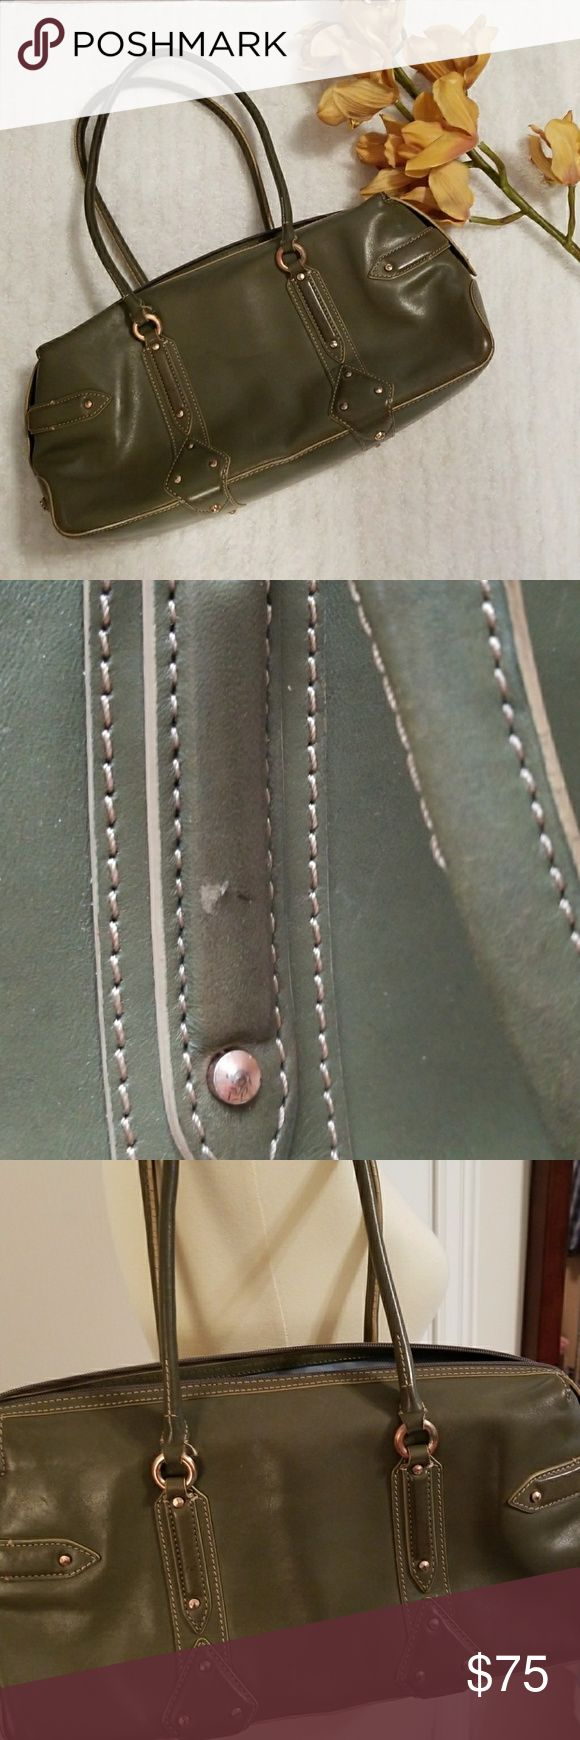 """Cole Haan Trinity olive green leather satchel Perfect for fall olive green shoulder bag by Cole Haan. Top zip close. Good condition. Just a couple of scuffs on the leather and minor wear on bottom (pictured) lining could use a cleaning. Approx 14.5""""w x 9""""h x 6"""" d. Strap drop approx Cole Haan Bags"""